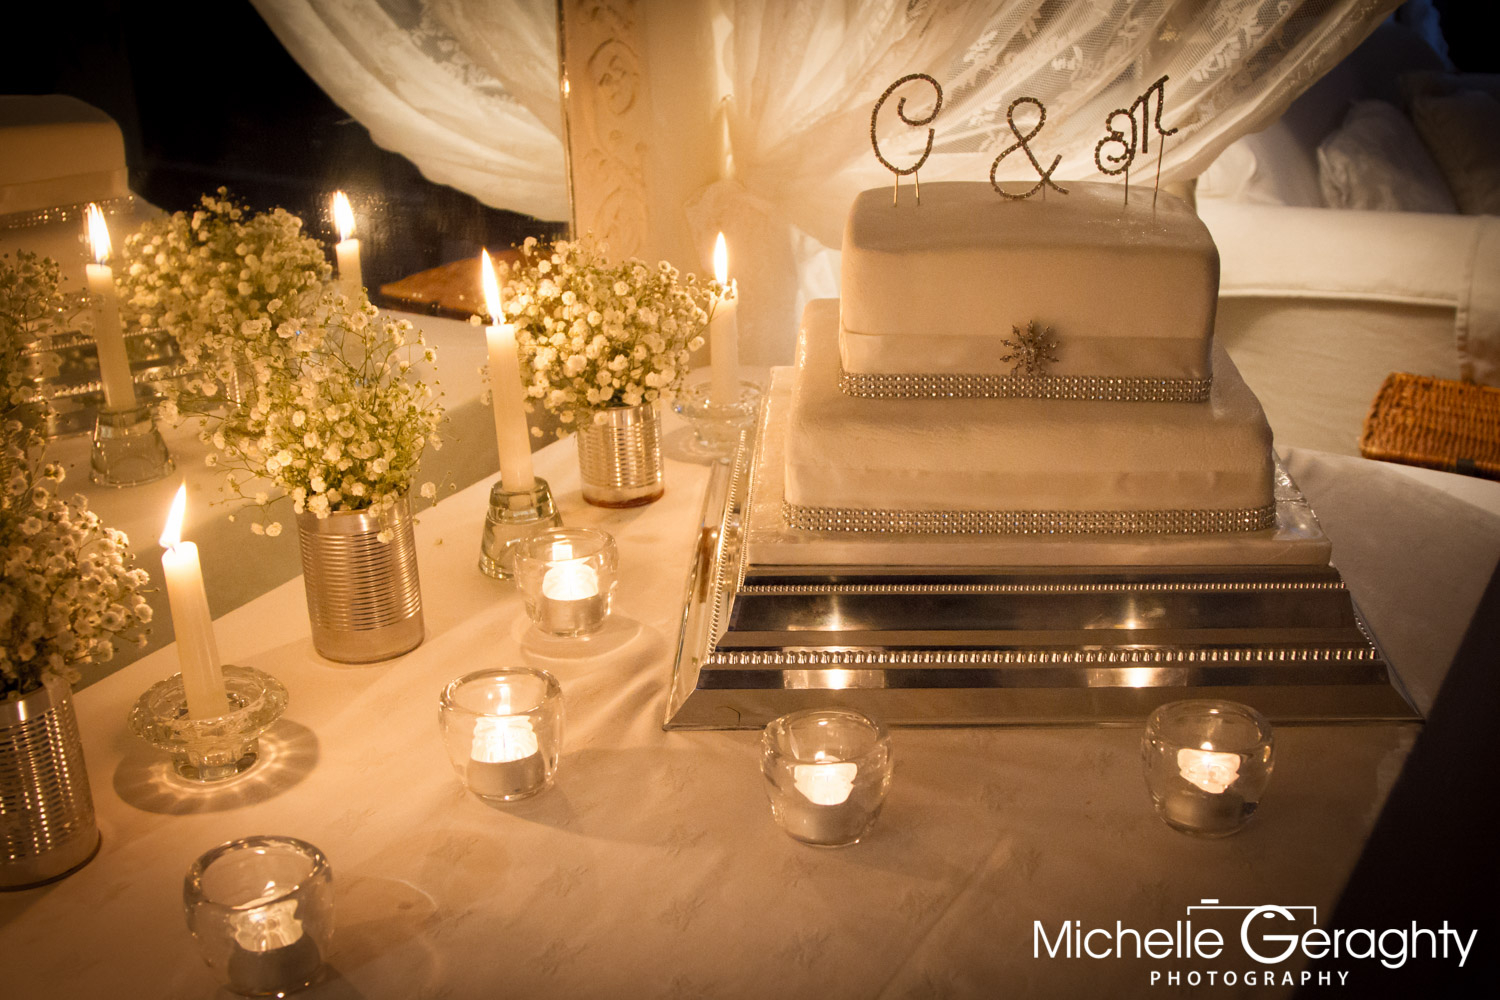 1588-Michelle Geraghty Photography_Mary & Connal-IMG_6822.jpg